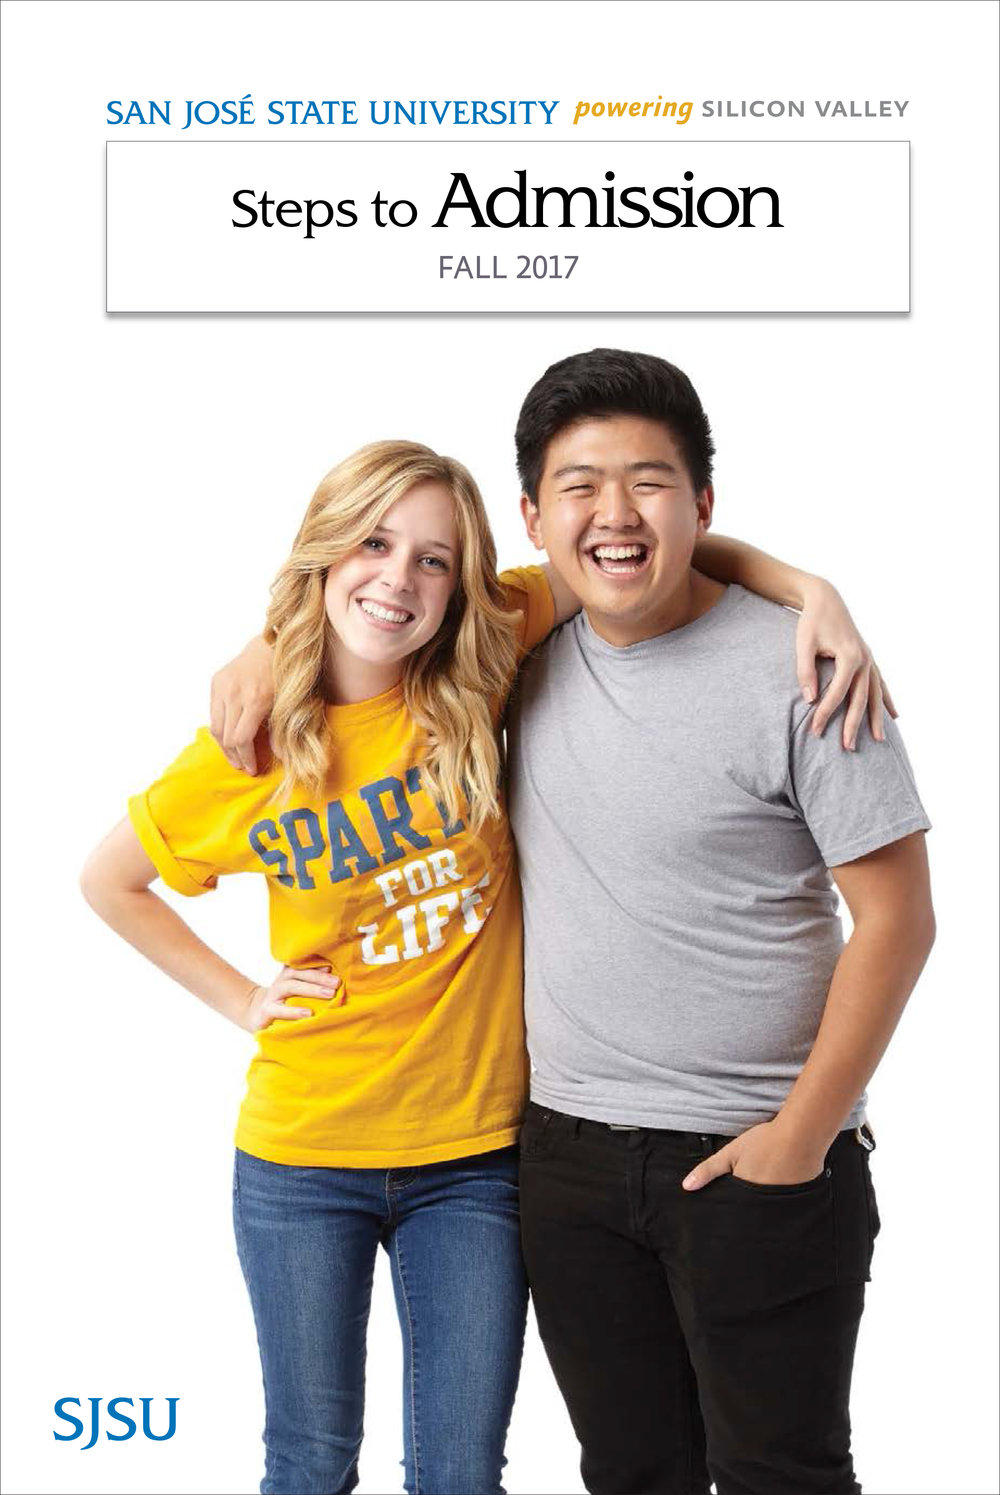 San Jose State University Admissions Brochure